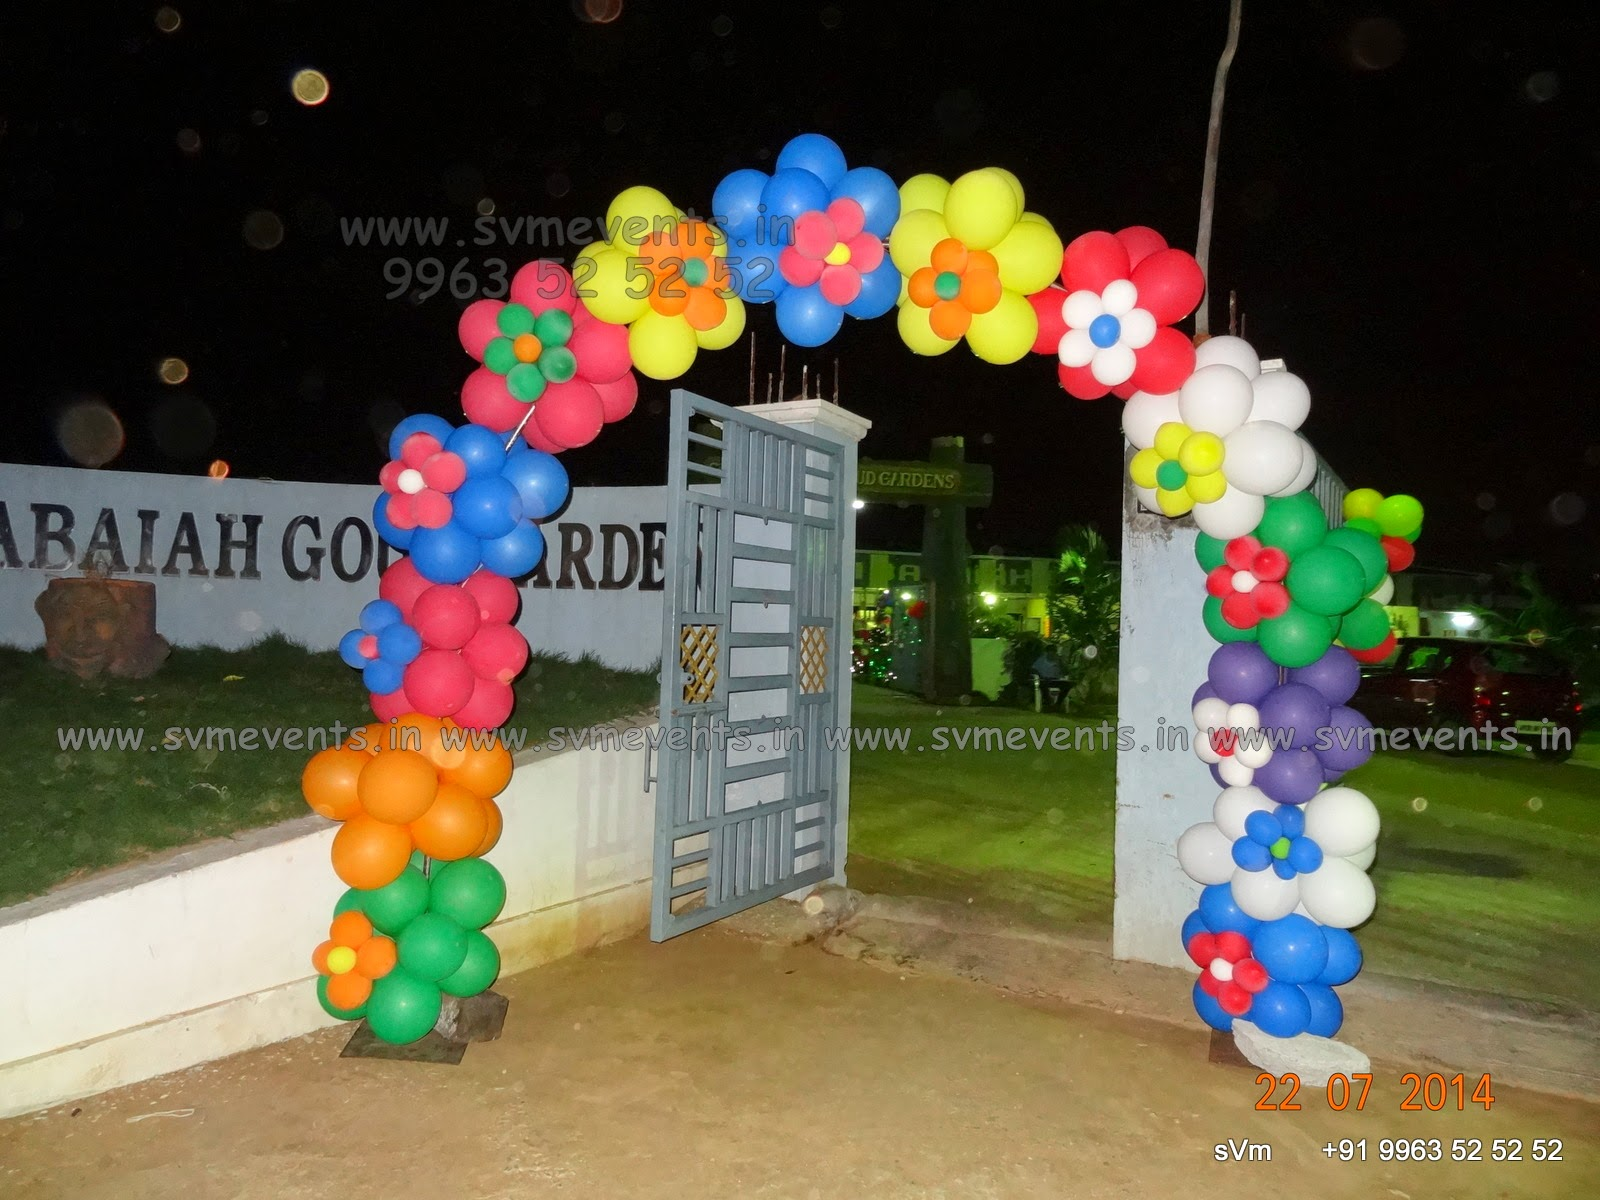 Svm events jungle theme balloon wall and balloon for Balloon decoration on wall